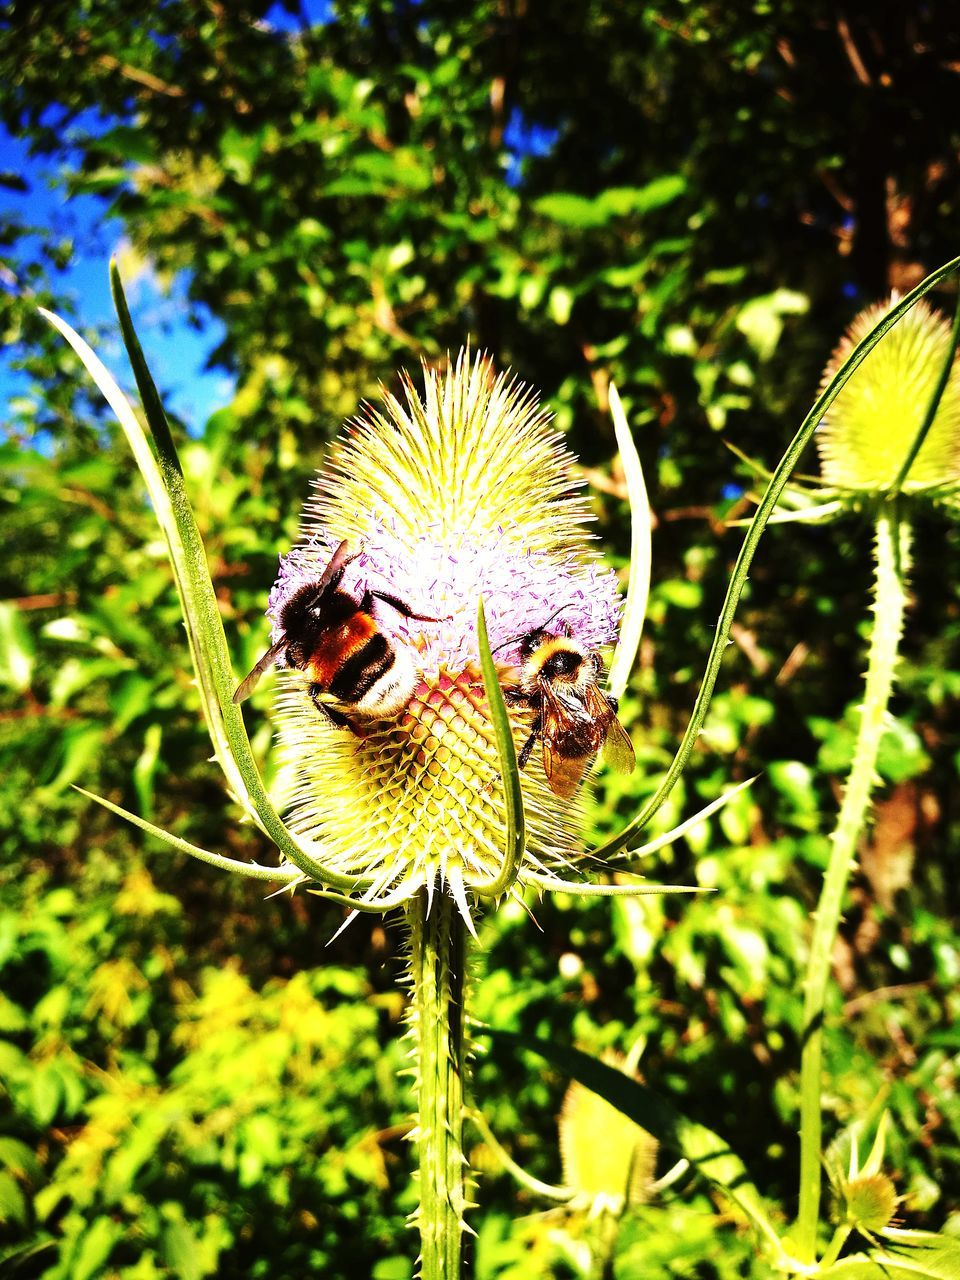 nature, flower, growth, fragility, insect, plant, beauty in nature, focus on foreground, one animal, close-up, outdoors, day, animal themes, no people, animals in the wild, flower head, thistle, bee, freshness, pollination